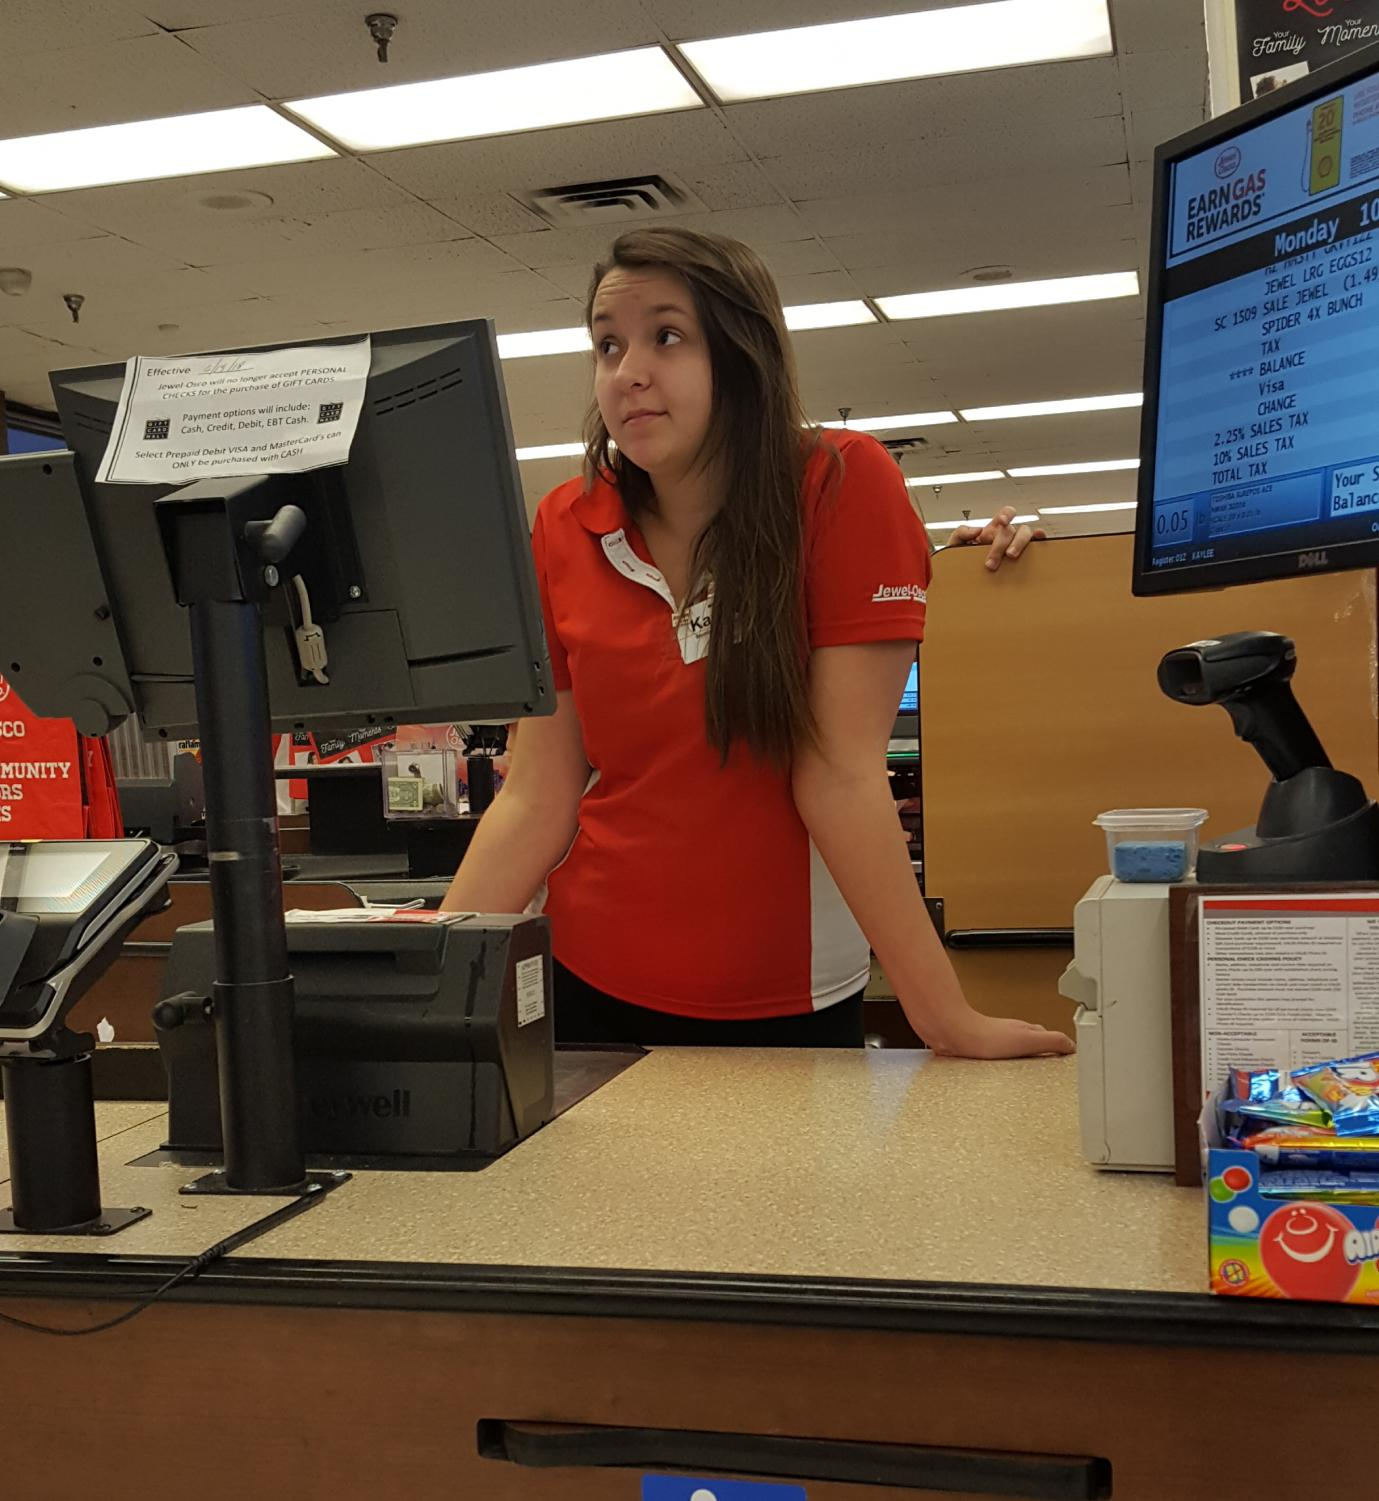 Kaylee Kalvig awaits her next customer in the check out line at Jewel.